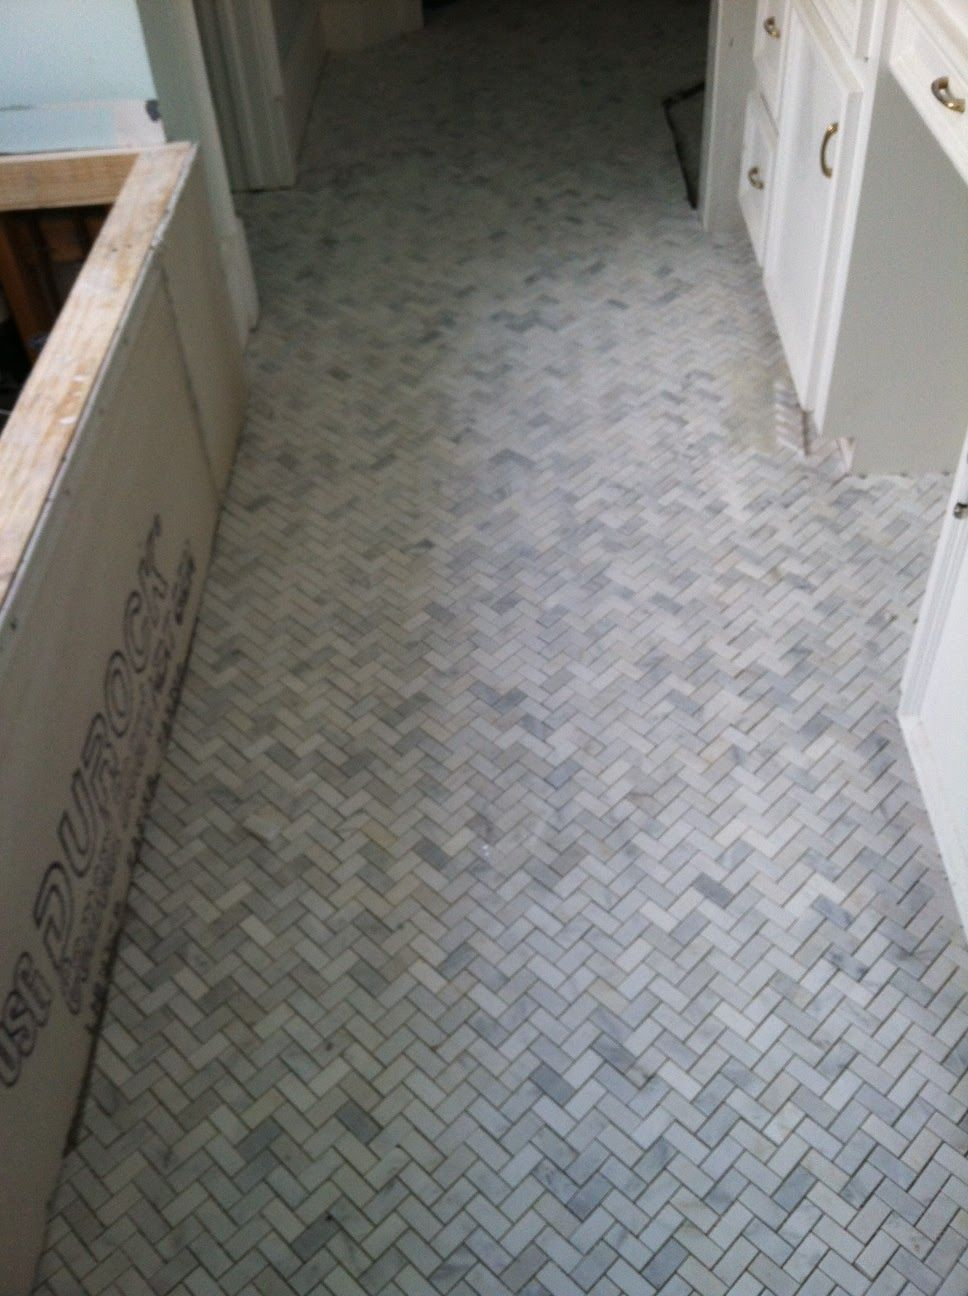 Featuring Life With A Dash Of Whimsy Herringbone Marble Floor Tile Bathroom Updating House